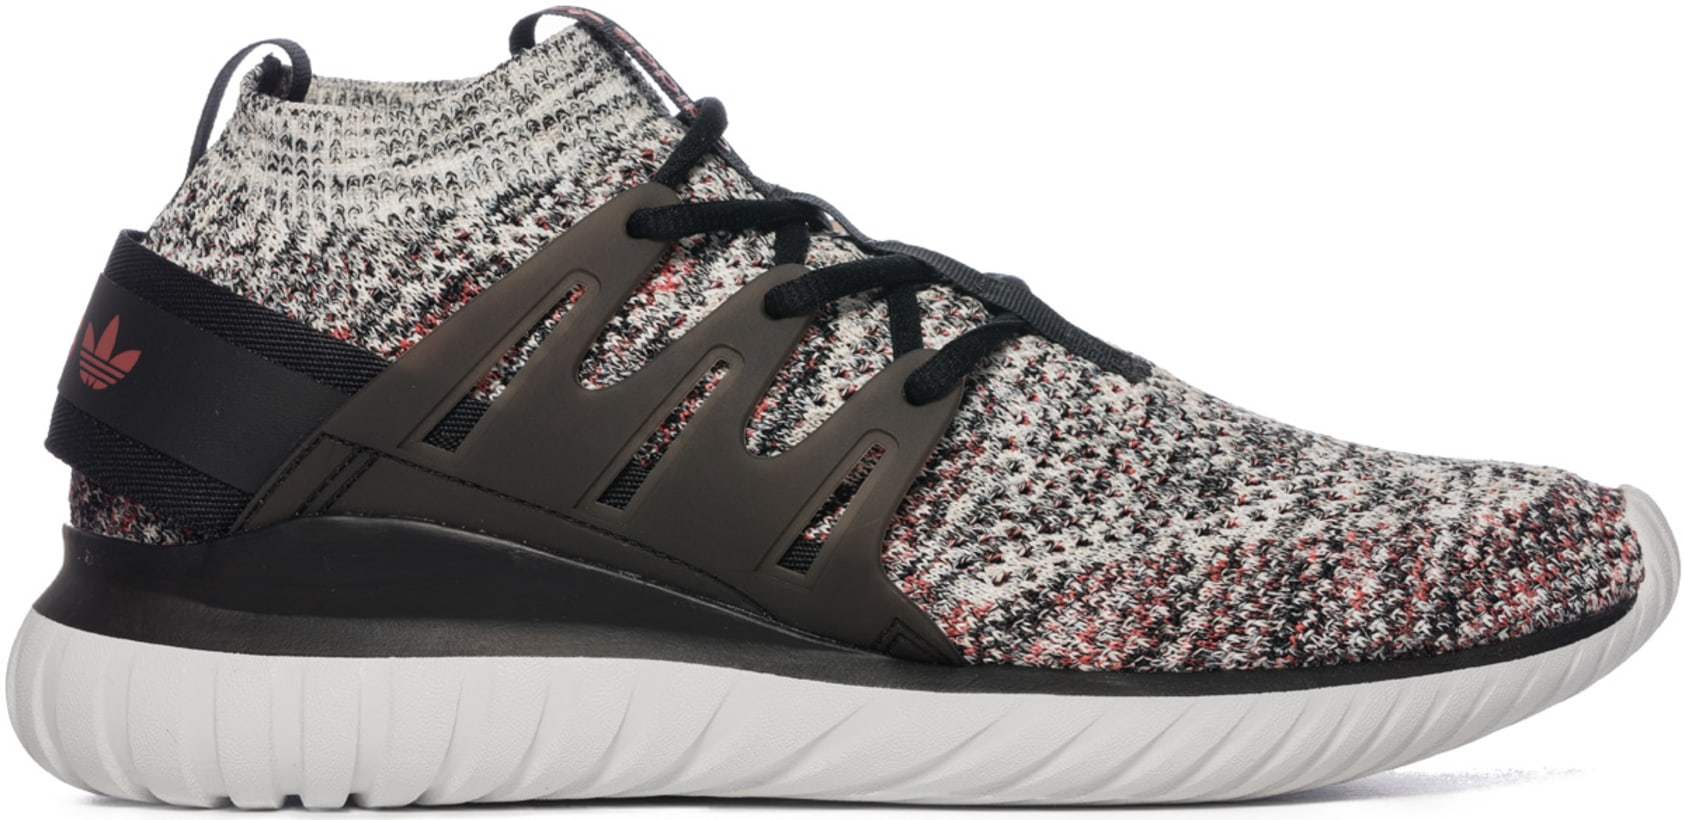 best loved 061ef 23eae adidas Originals - Tubular Nova Primeknit - Dark Grey/Multi